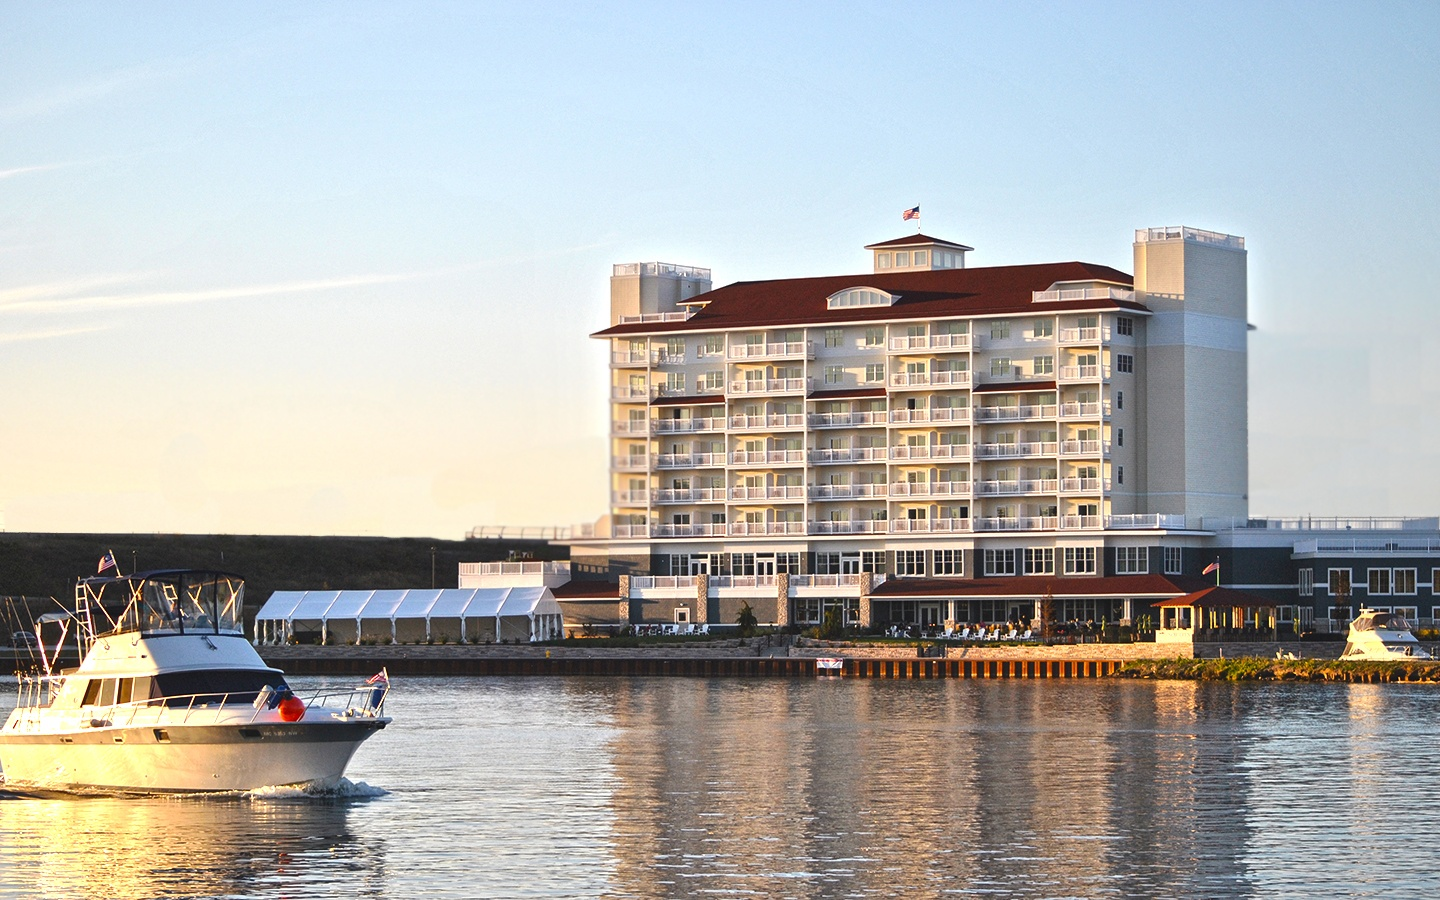 header img 1 - The Inn at Harbor Shores Waterfront Resort and Condo Residences Leverages Maestro PMS and Intelity Integration to Enhance Contactless Guest Experiences - Innovative Property Management Software Solutions Powering Hotels, Resorts & Multi‑Property Groups.